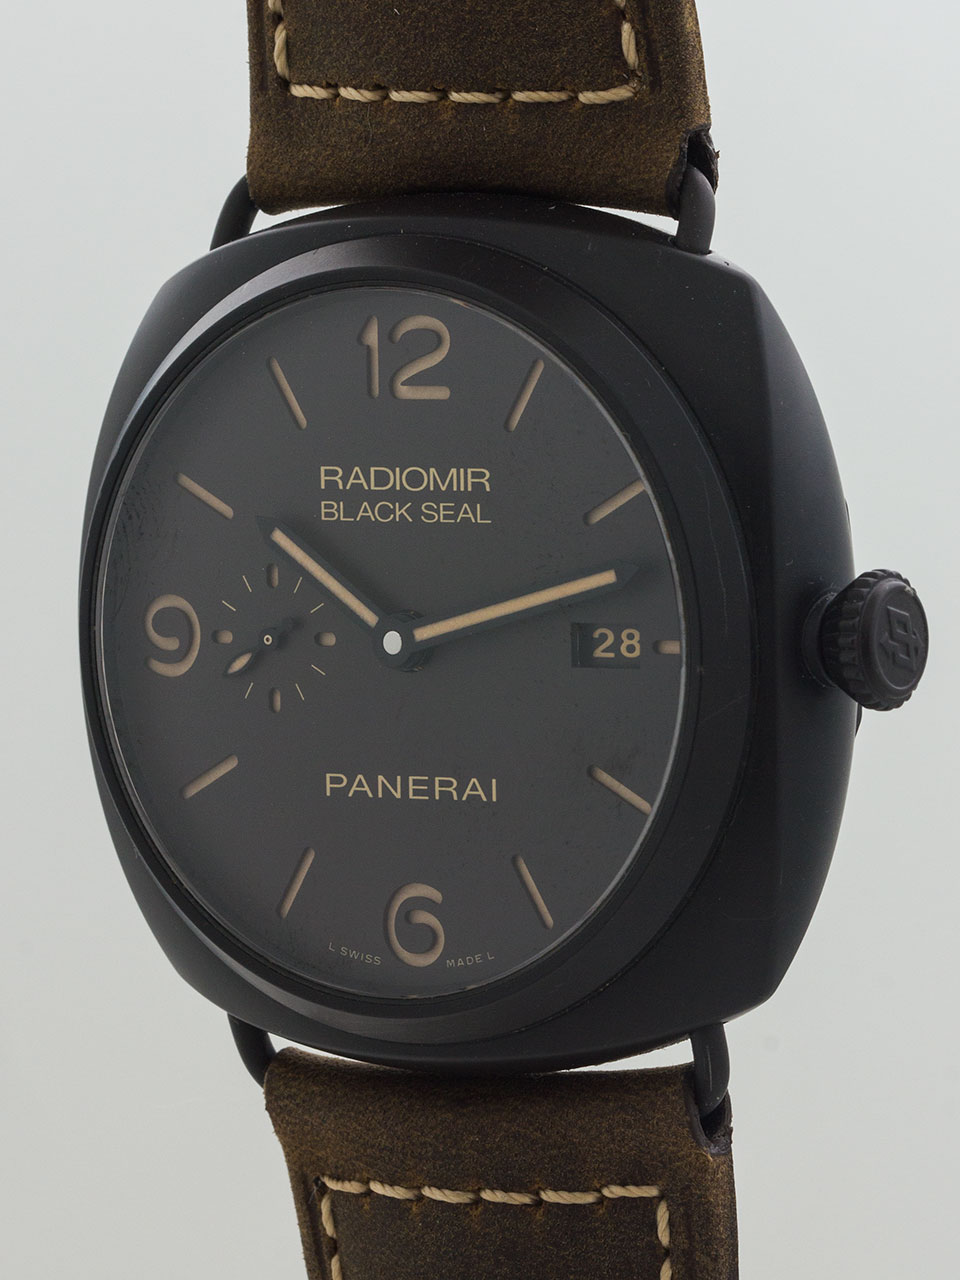 Panerai Radiomir Composite (PVD) Black Seal 3 Day Automatic PAM 00505 B & P